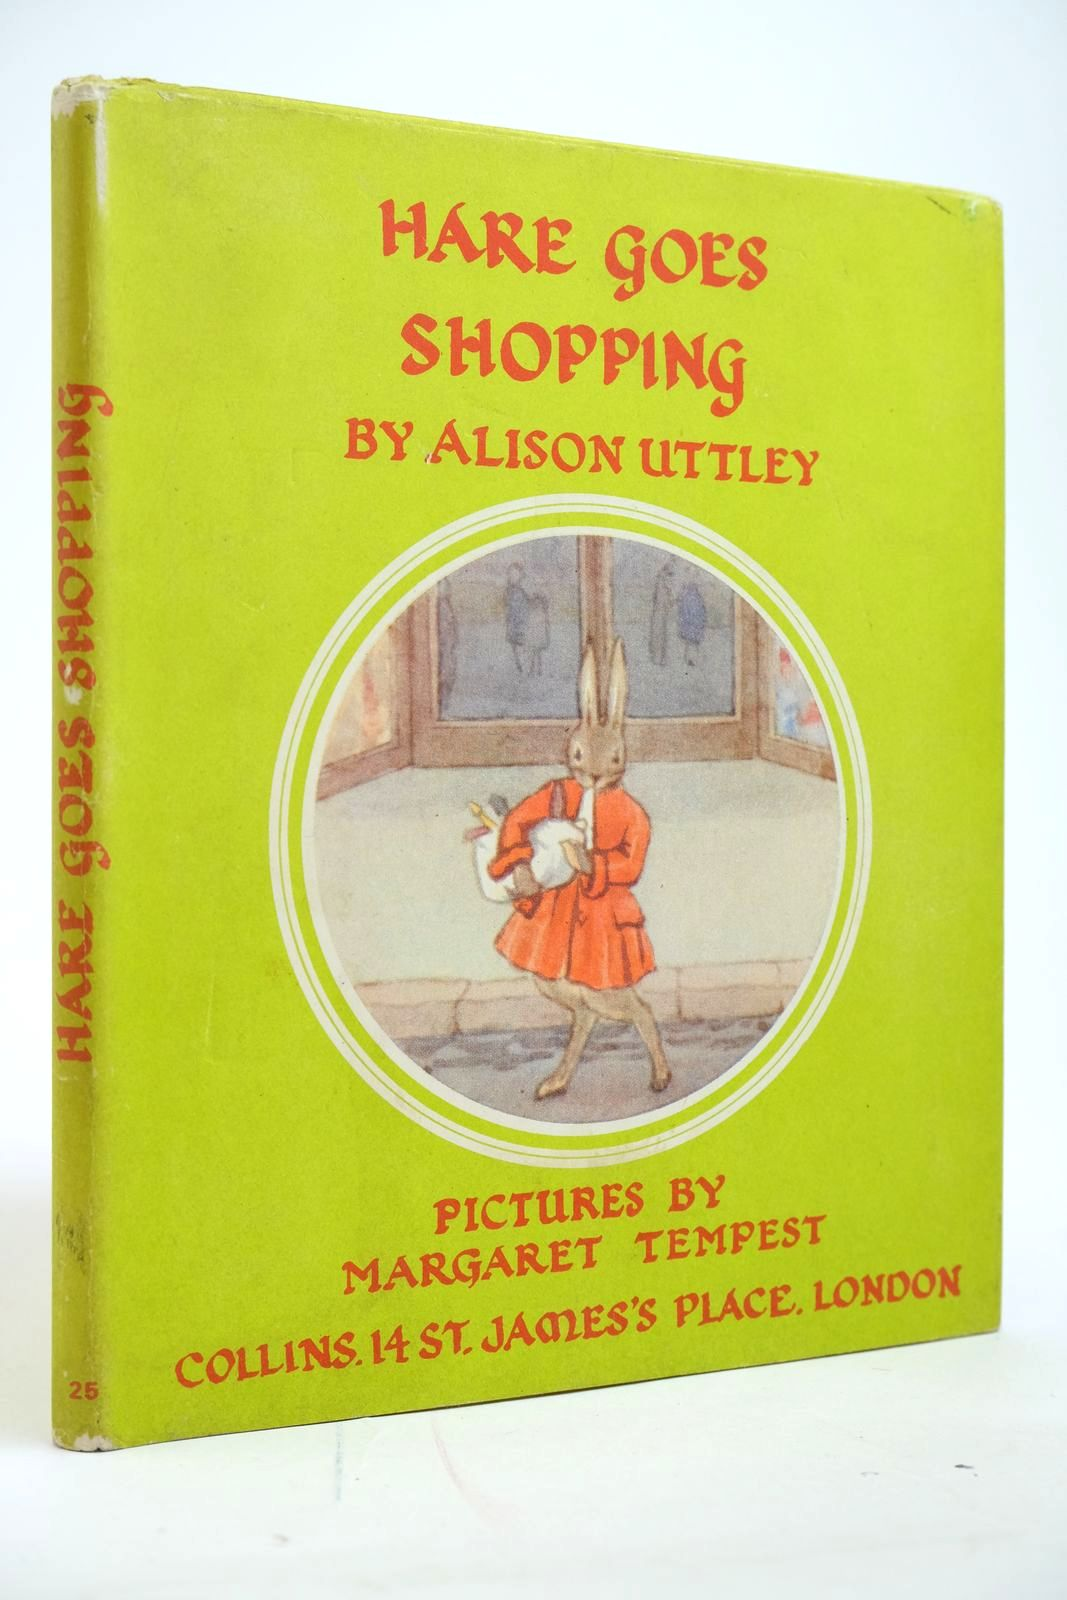 Photo of HARE GOES SHOPPING written by Uttley, Alison illustrated by Tempest, Margaret published by Collins (STOCK CODE: 2135094)  for sale by Stella & Rose's Books